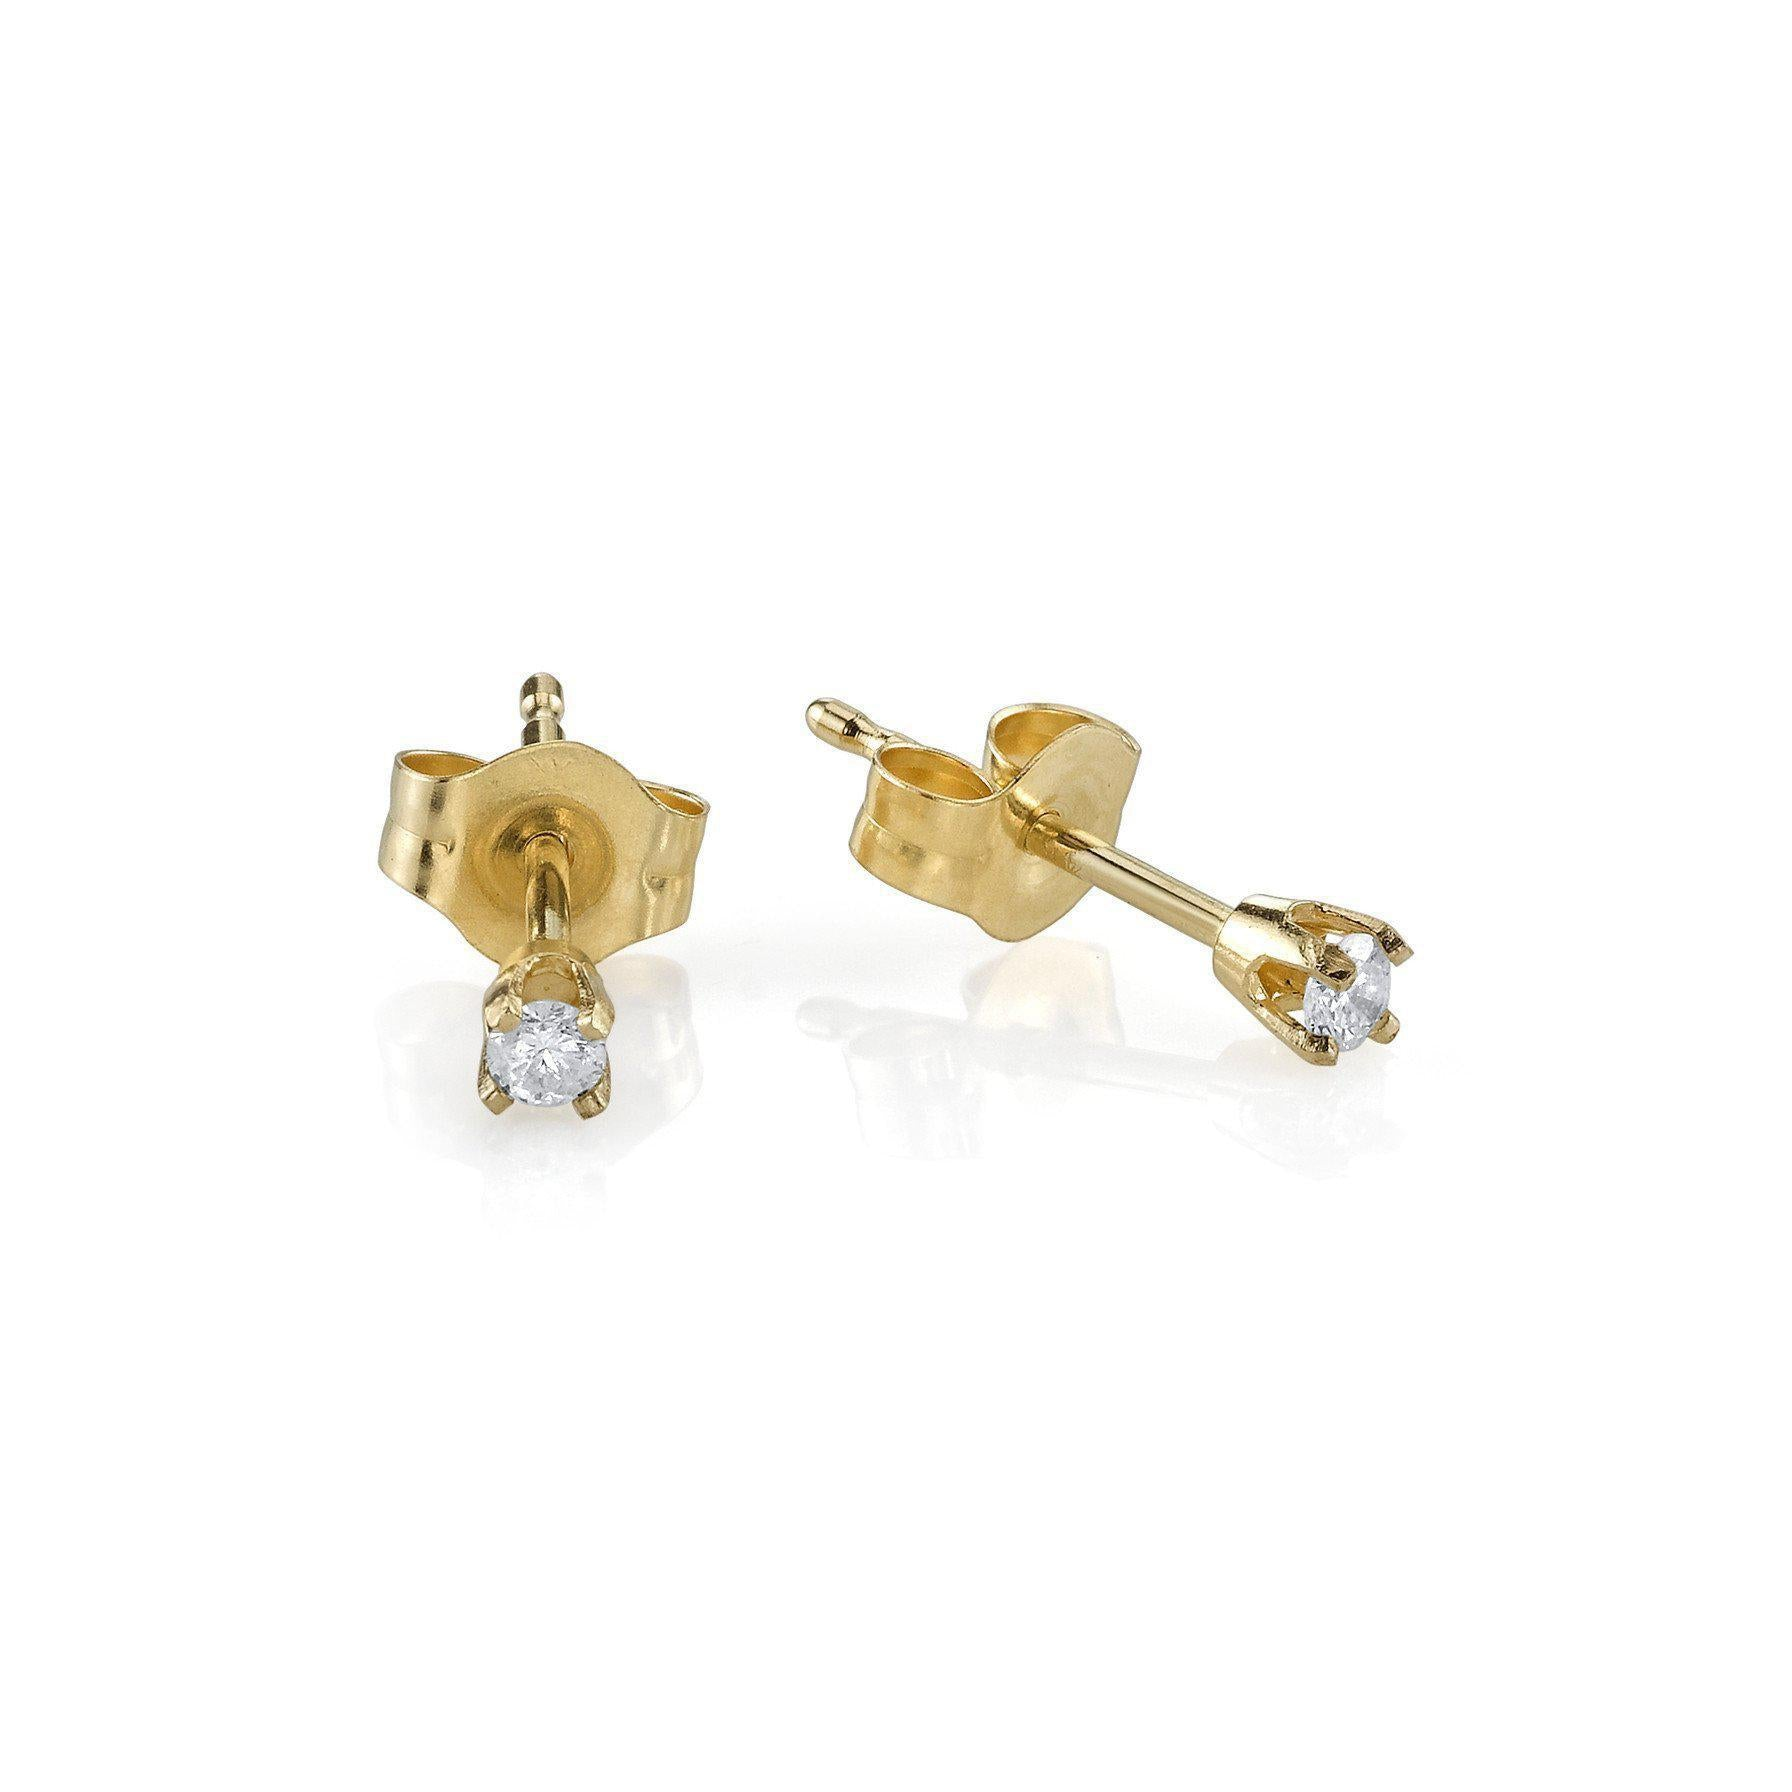 Baby Prong Earrings With White Diamonds - Gabriela Artigas